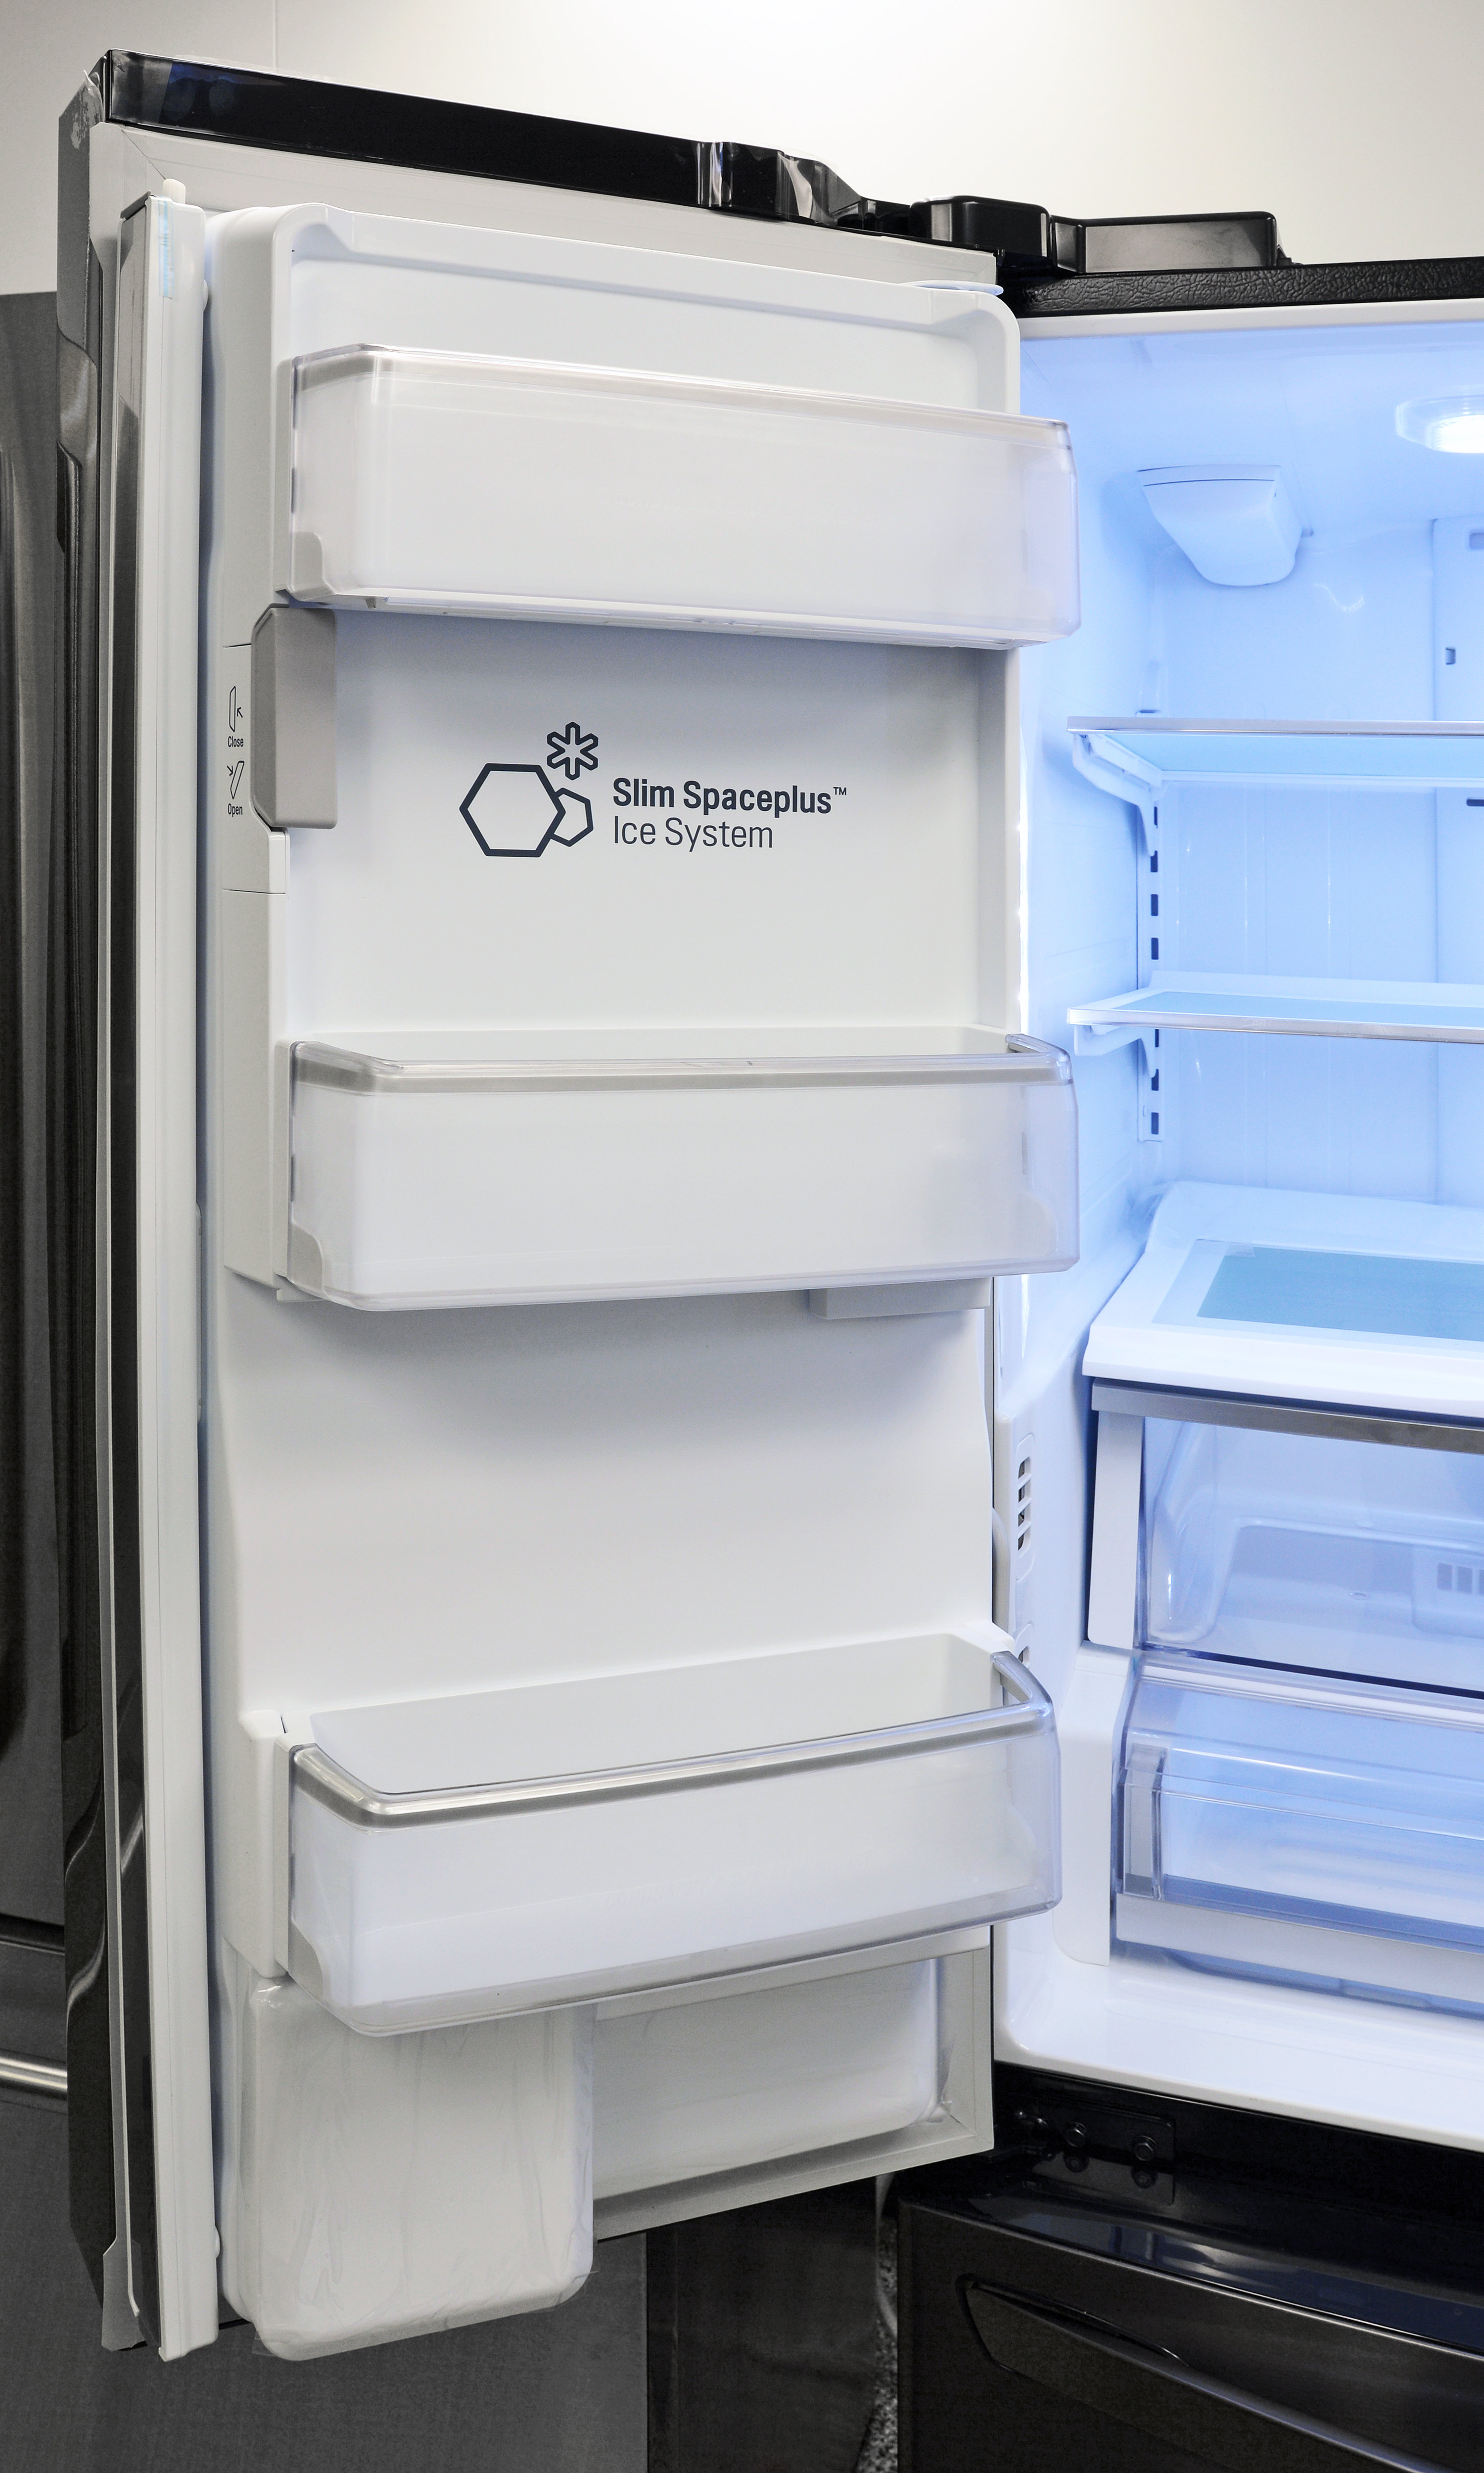 The left fridge door has some shallow storage available, as well as the slim ice maker.